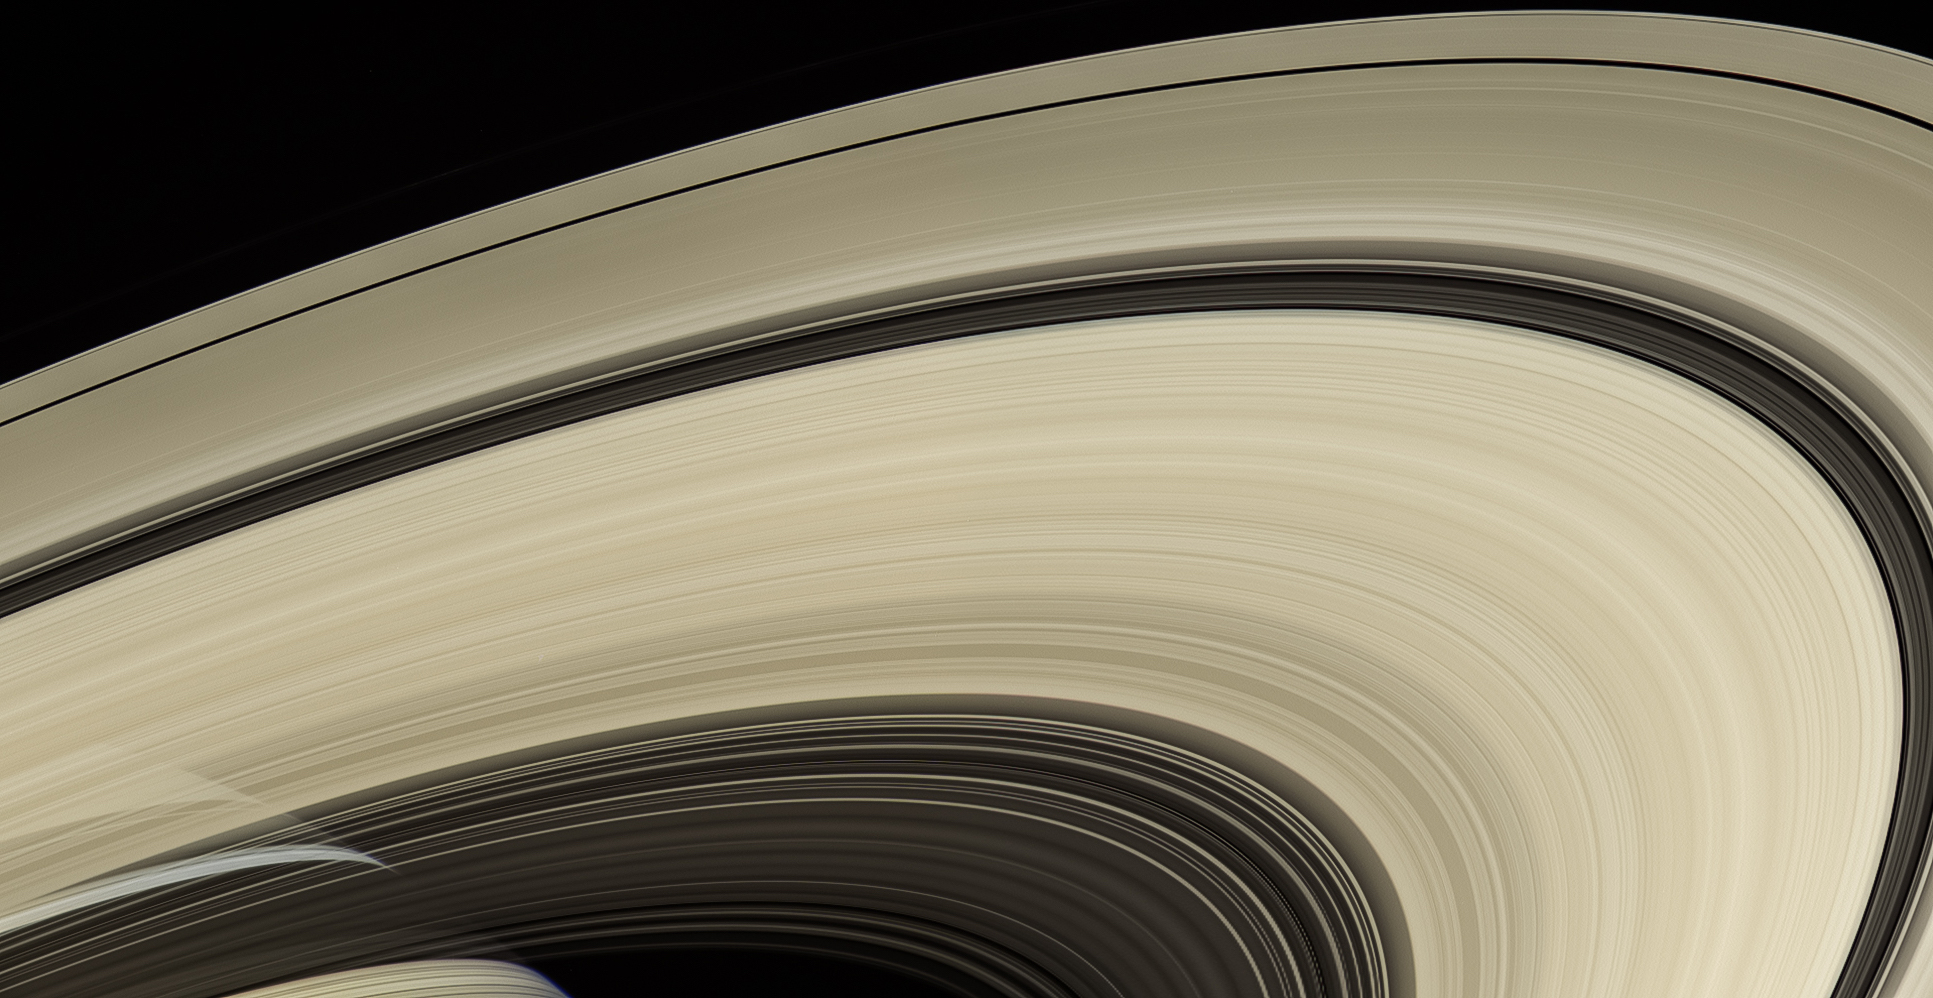 broad arc of rings with saturn visible behind